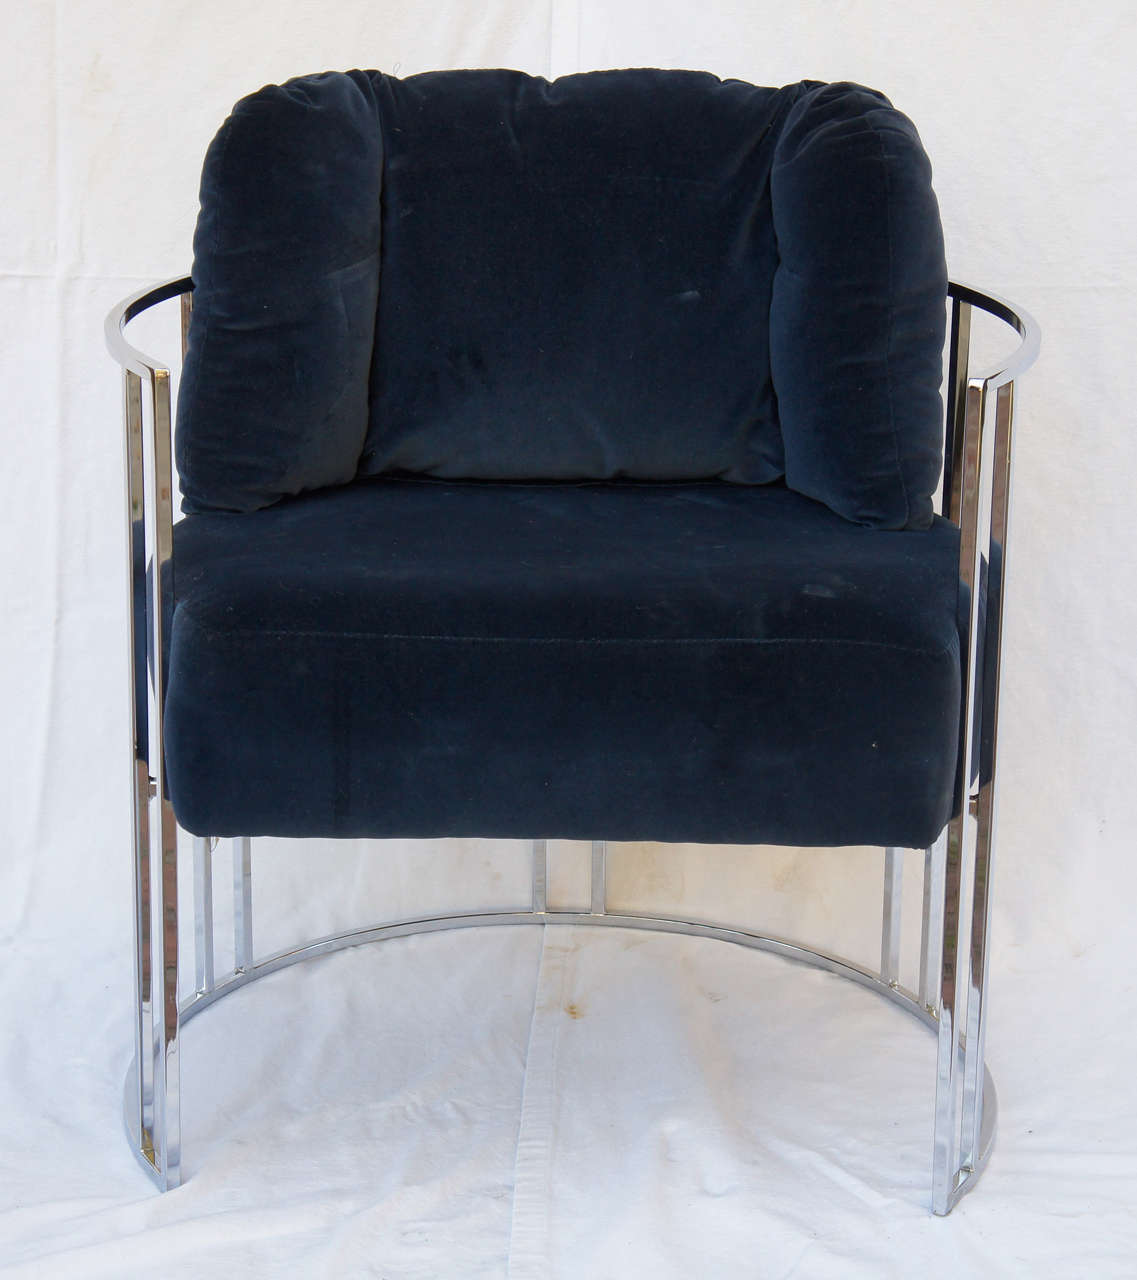 Pair of 70s chrome deco style chairs by milo baughman at for Furniture 70s style